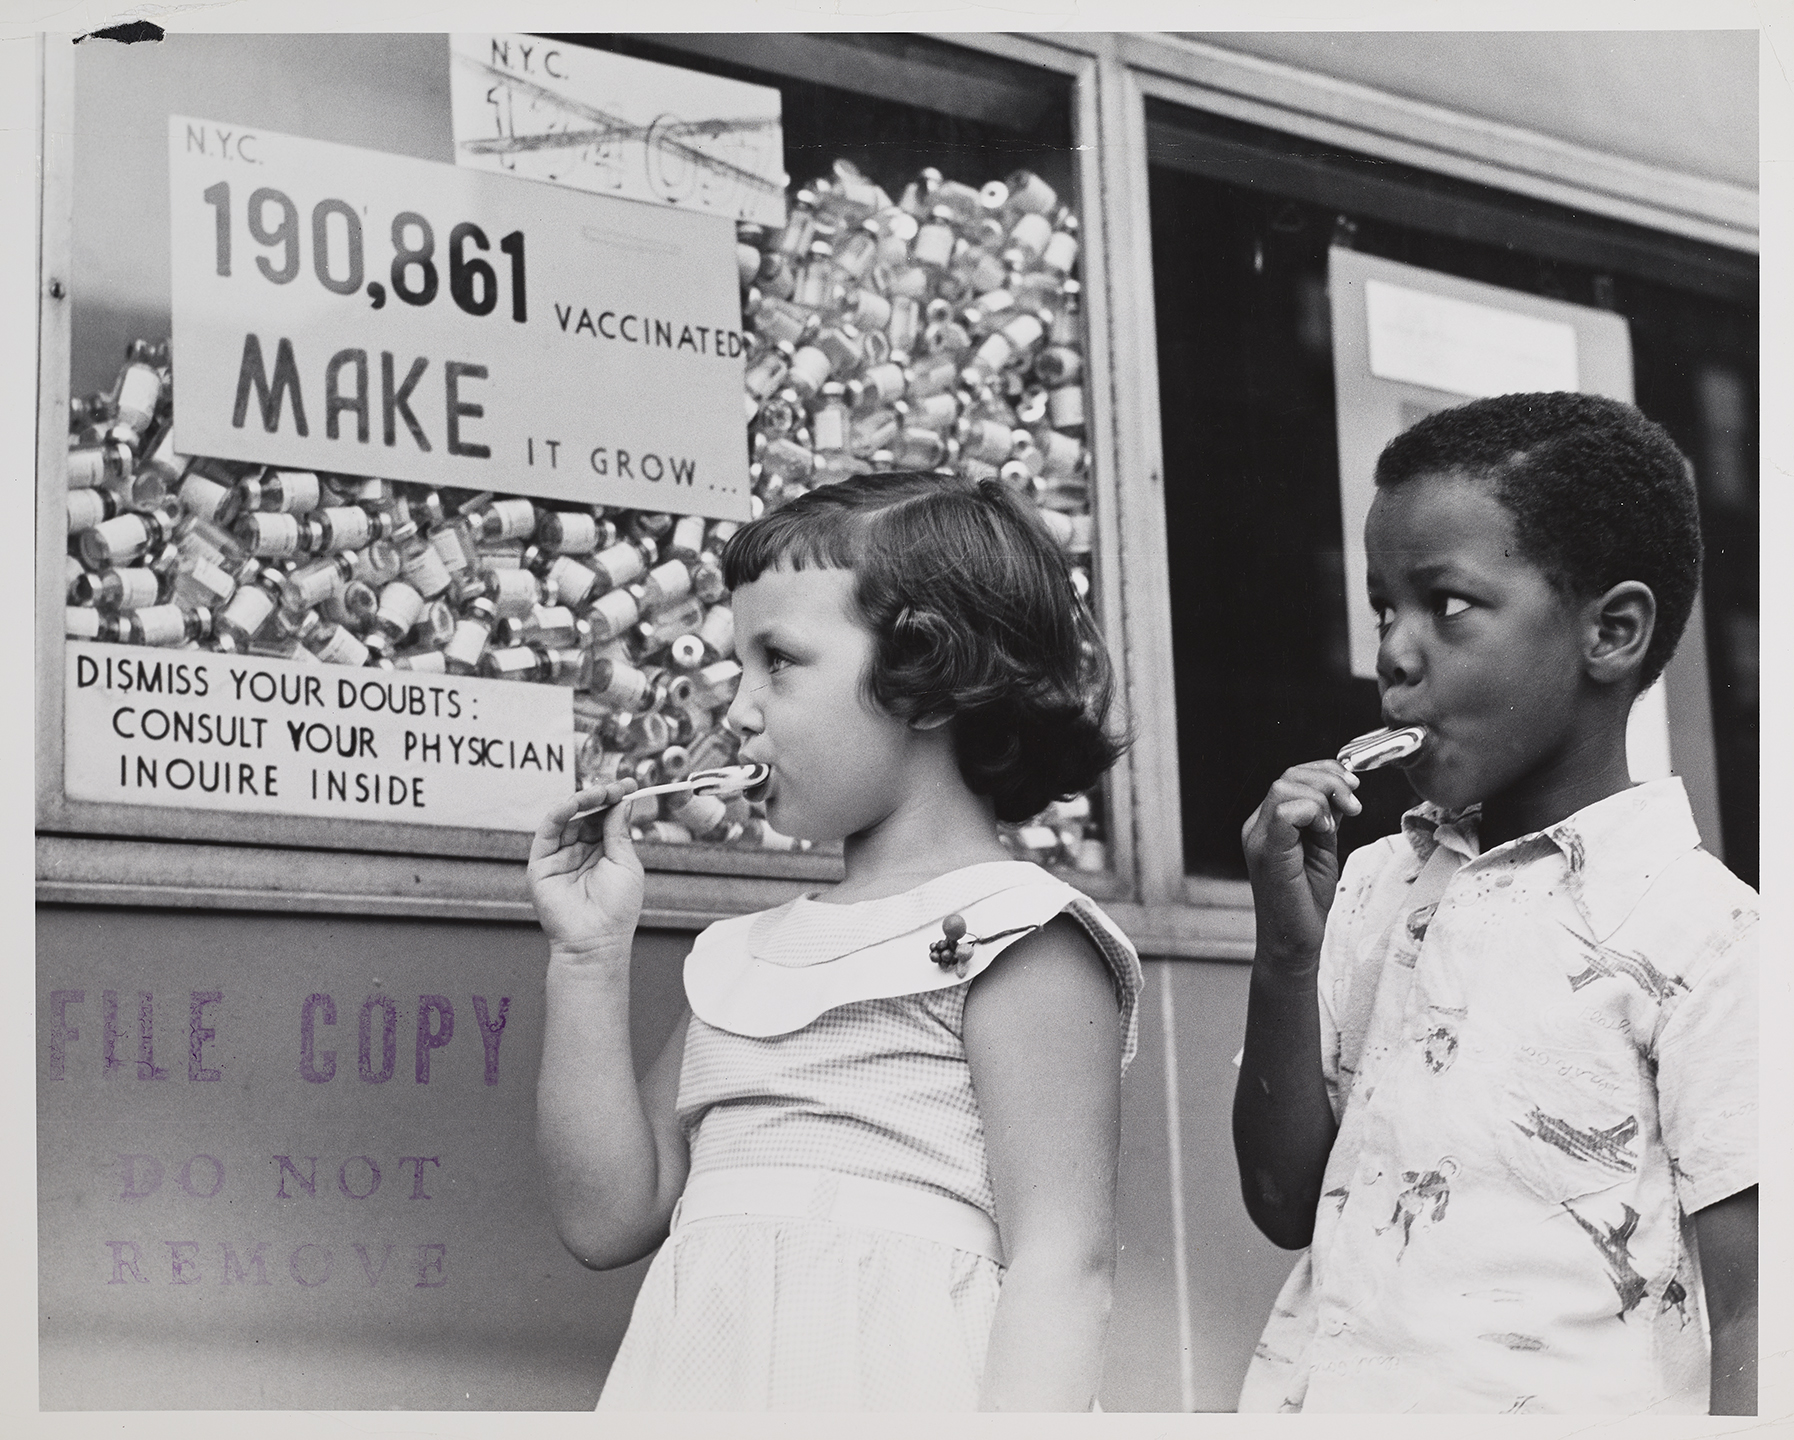 Polio display, Jamaica Health Center, August 31, 1955. Department of Health Collection, NYC Municipal Archives.